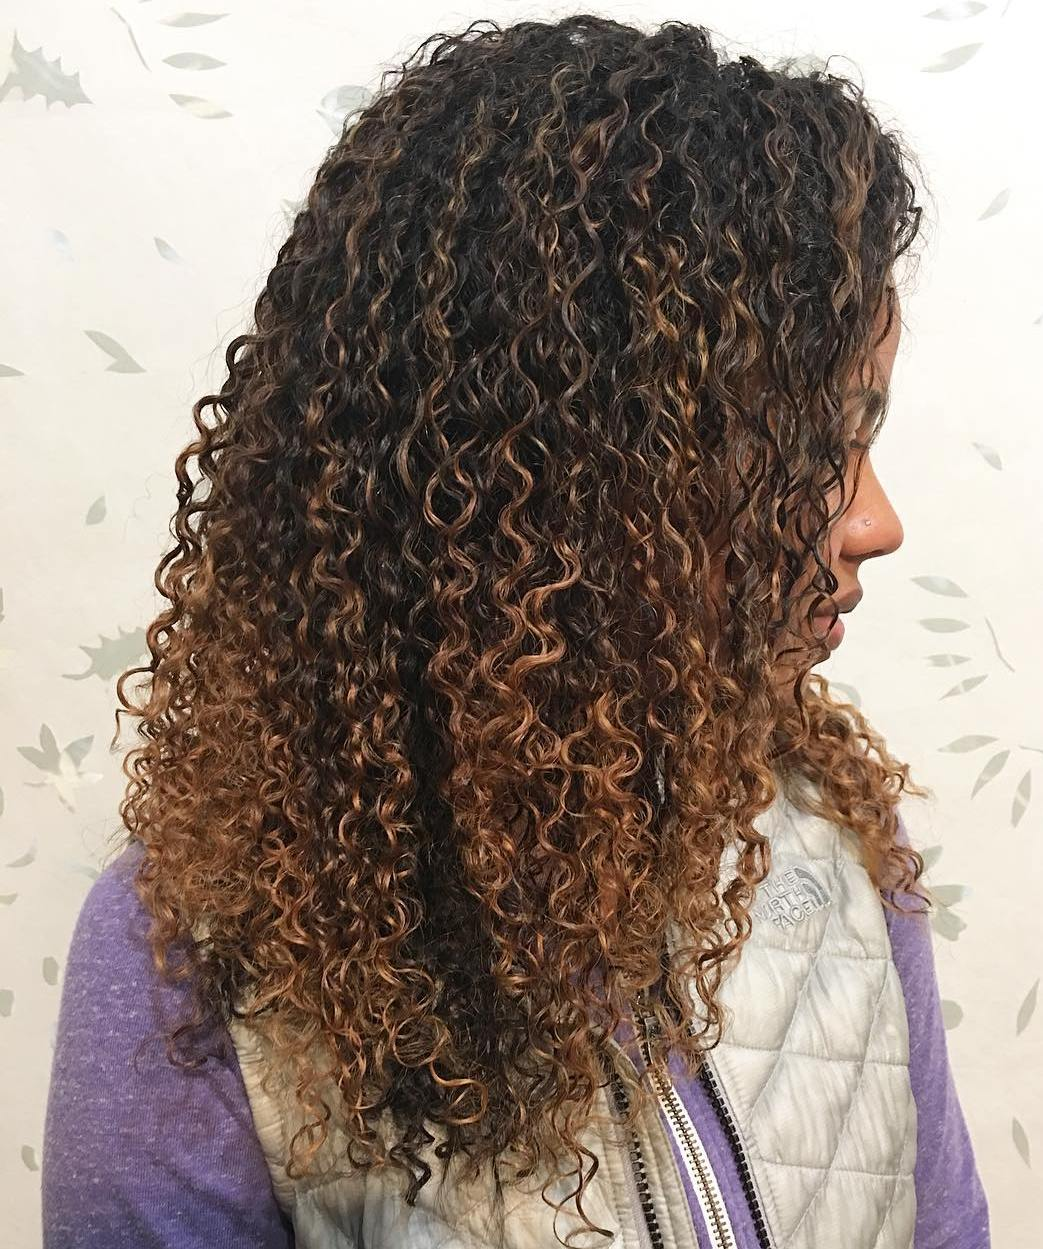 30 Picture,Perfect Black Curly Hairstyles